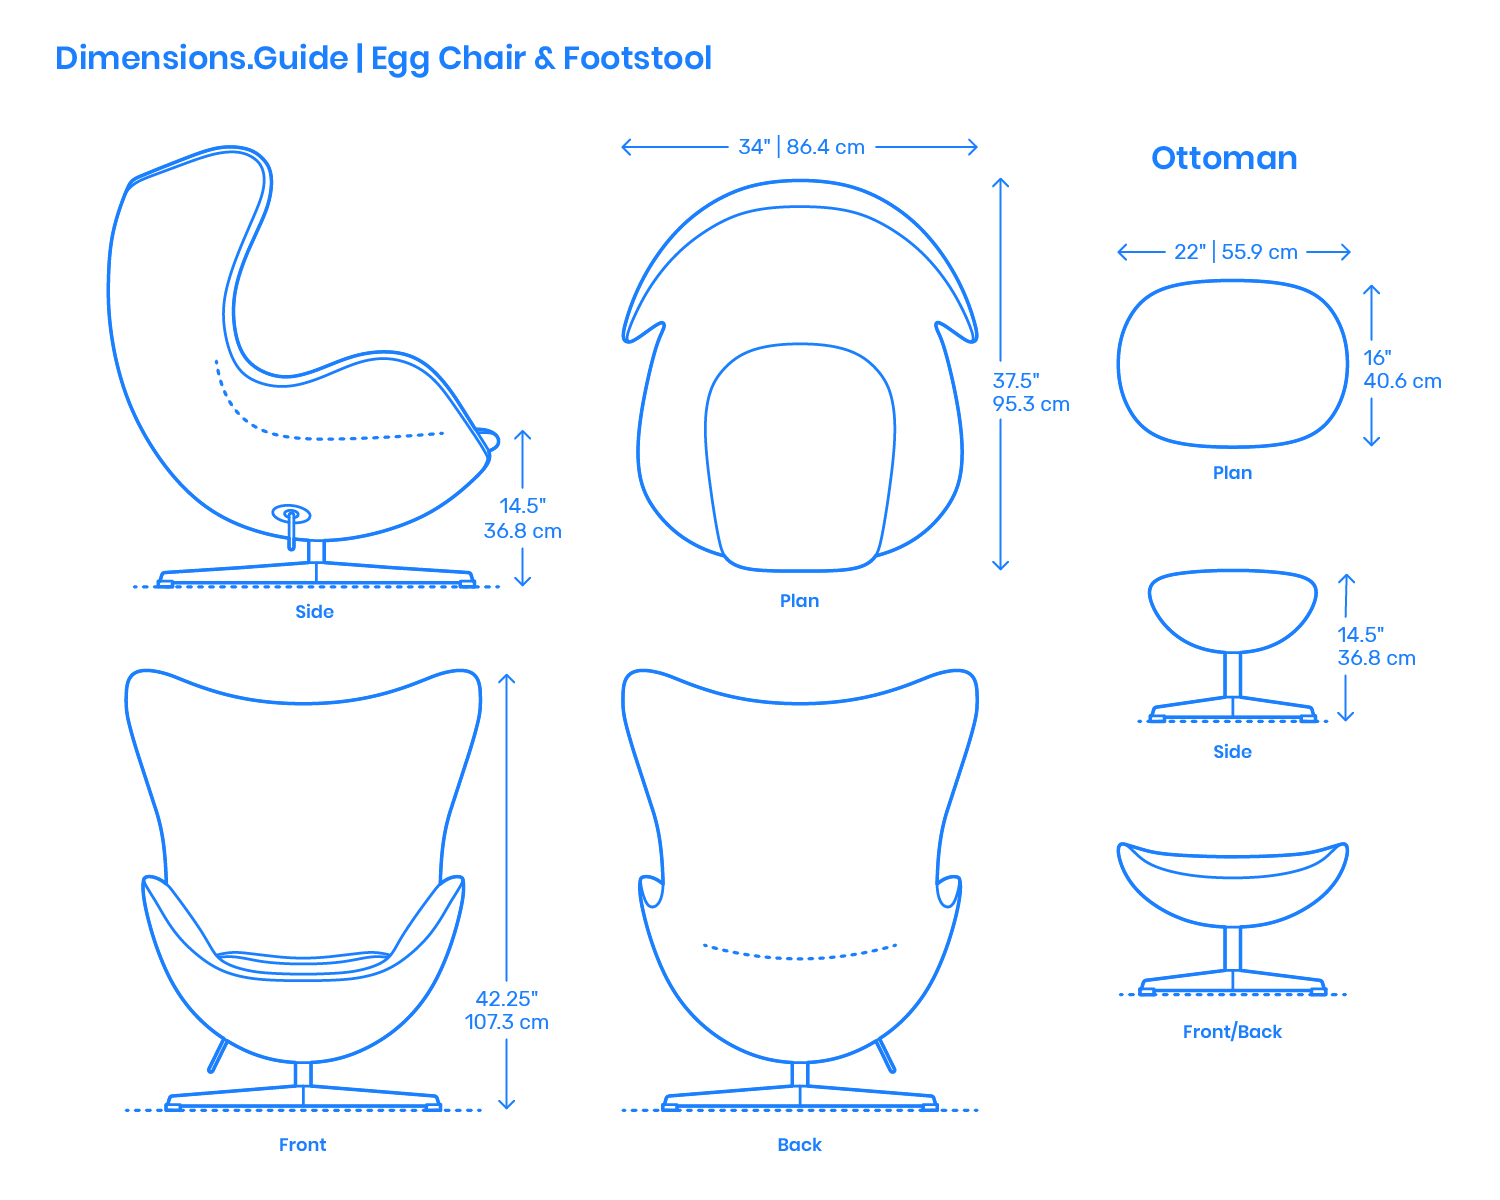 Lounge Chair Measurements Egg Chair And Footstool Dimensions And Drawings Dimensions Guide